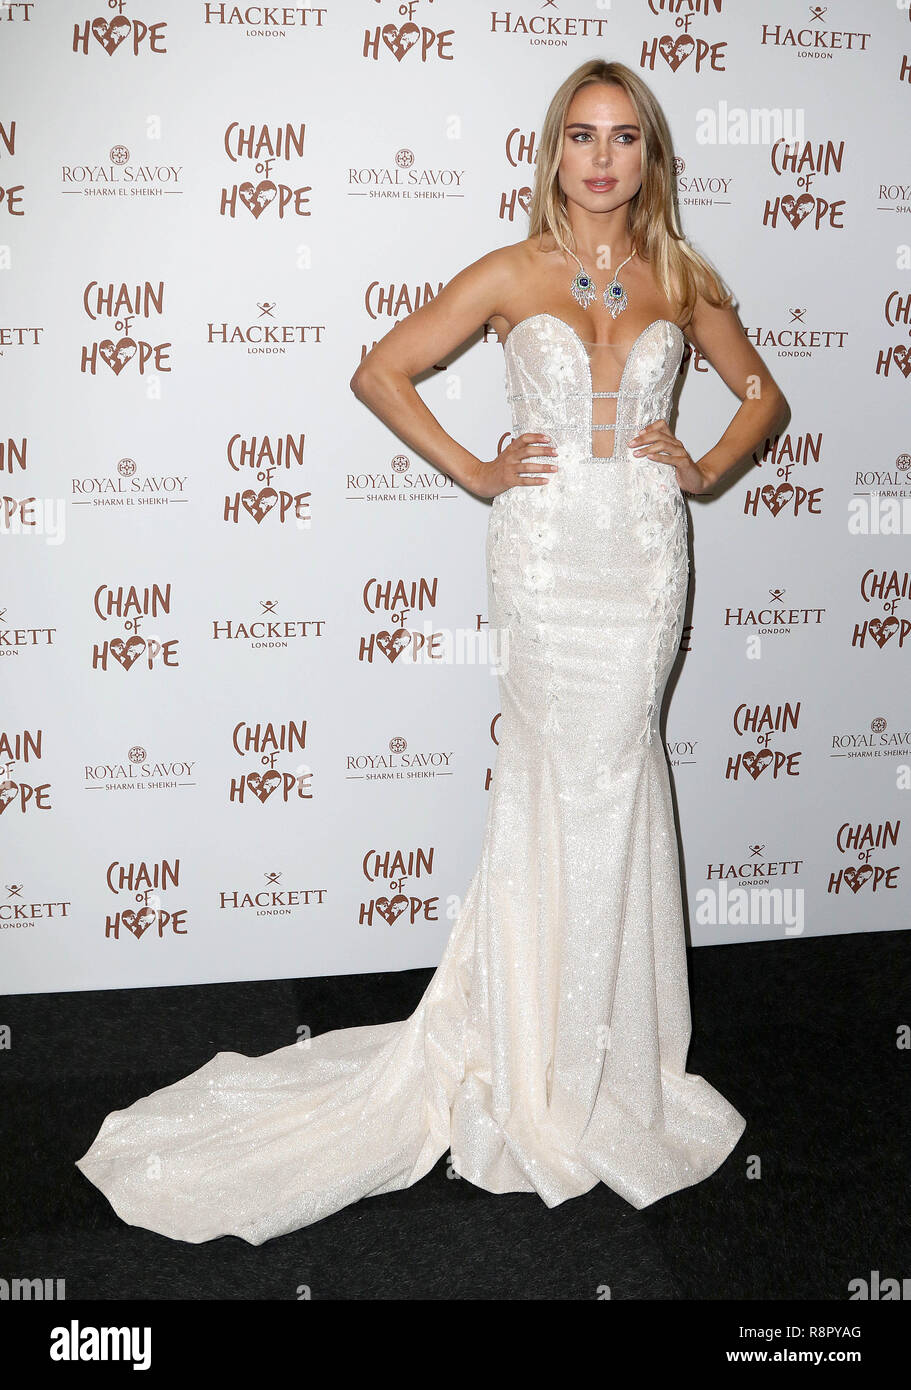 Nov 16, 2018  - Kimberley Garner attending Chain of Hope Gala Ball, Old Billingsgate in London, UK - Stock Image